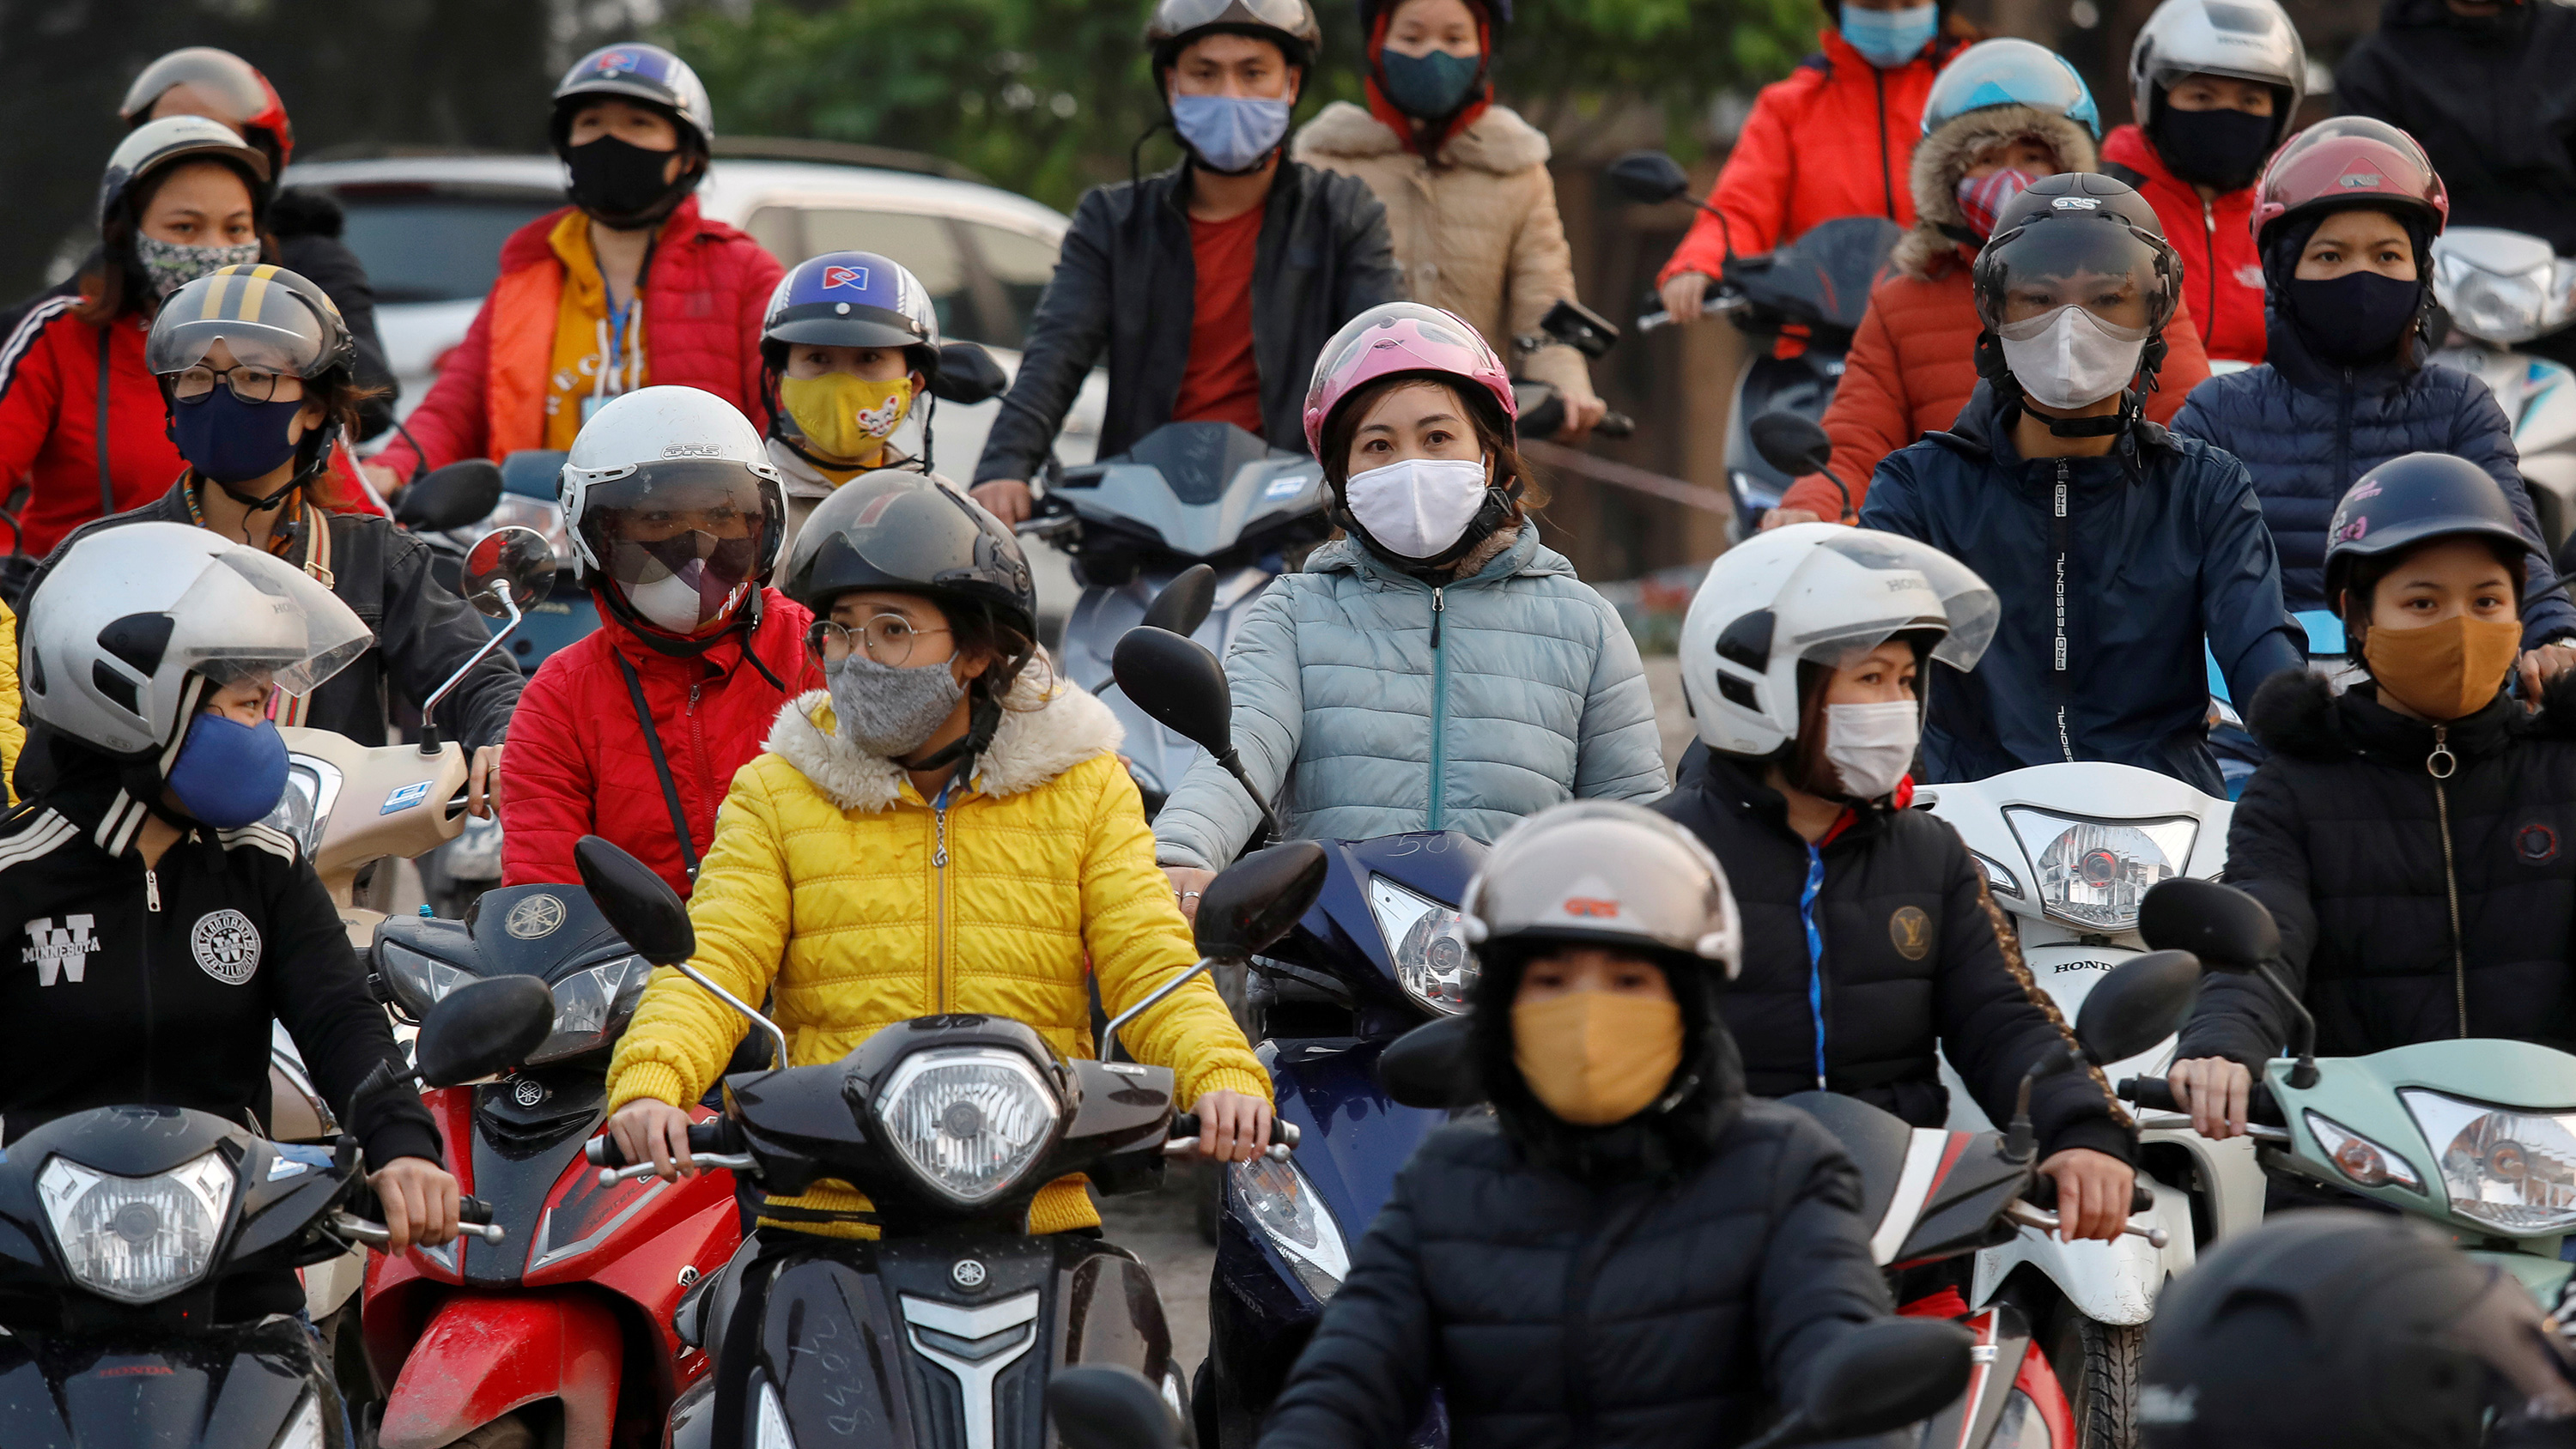 Laborers wearing protective masks gather while they wait for a ferry on the way home after work during the coronavirus outbreak in Hai Duong province, Vietnam, on April 7, 2020. The image shows a number of people on motorcycles wearing masks.